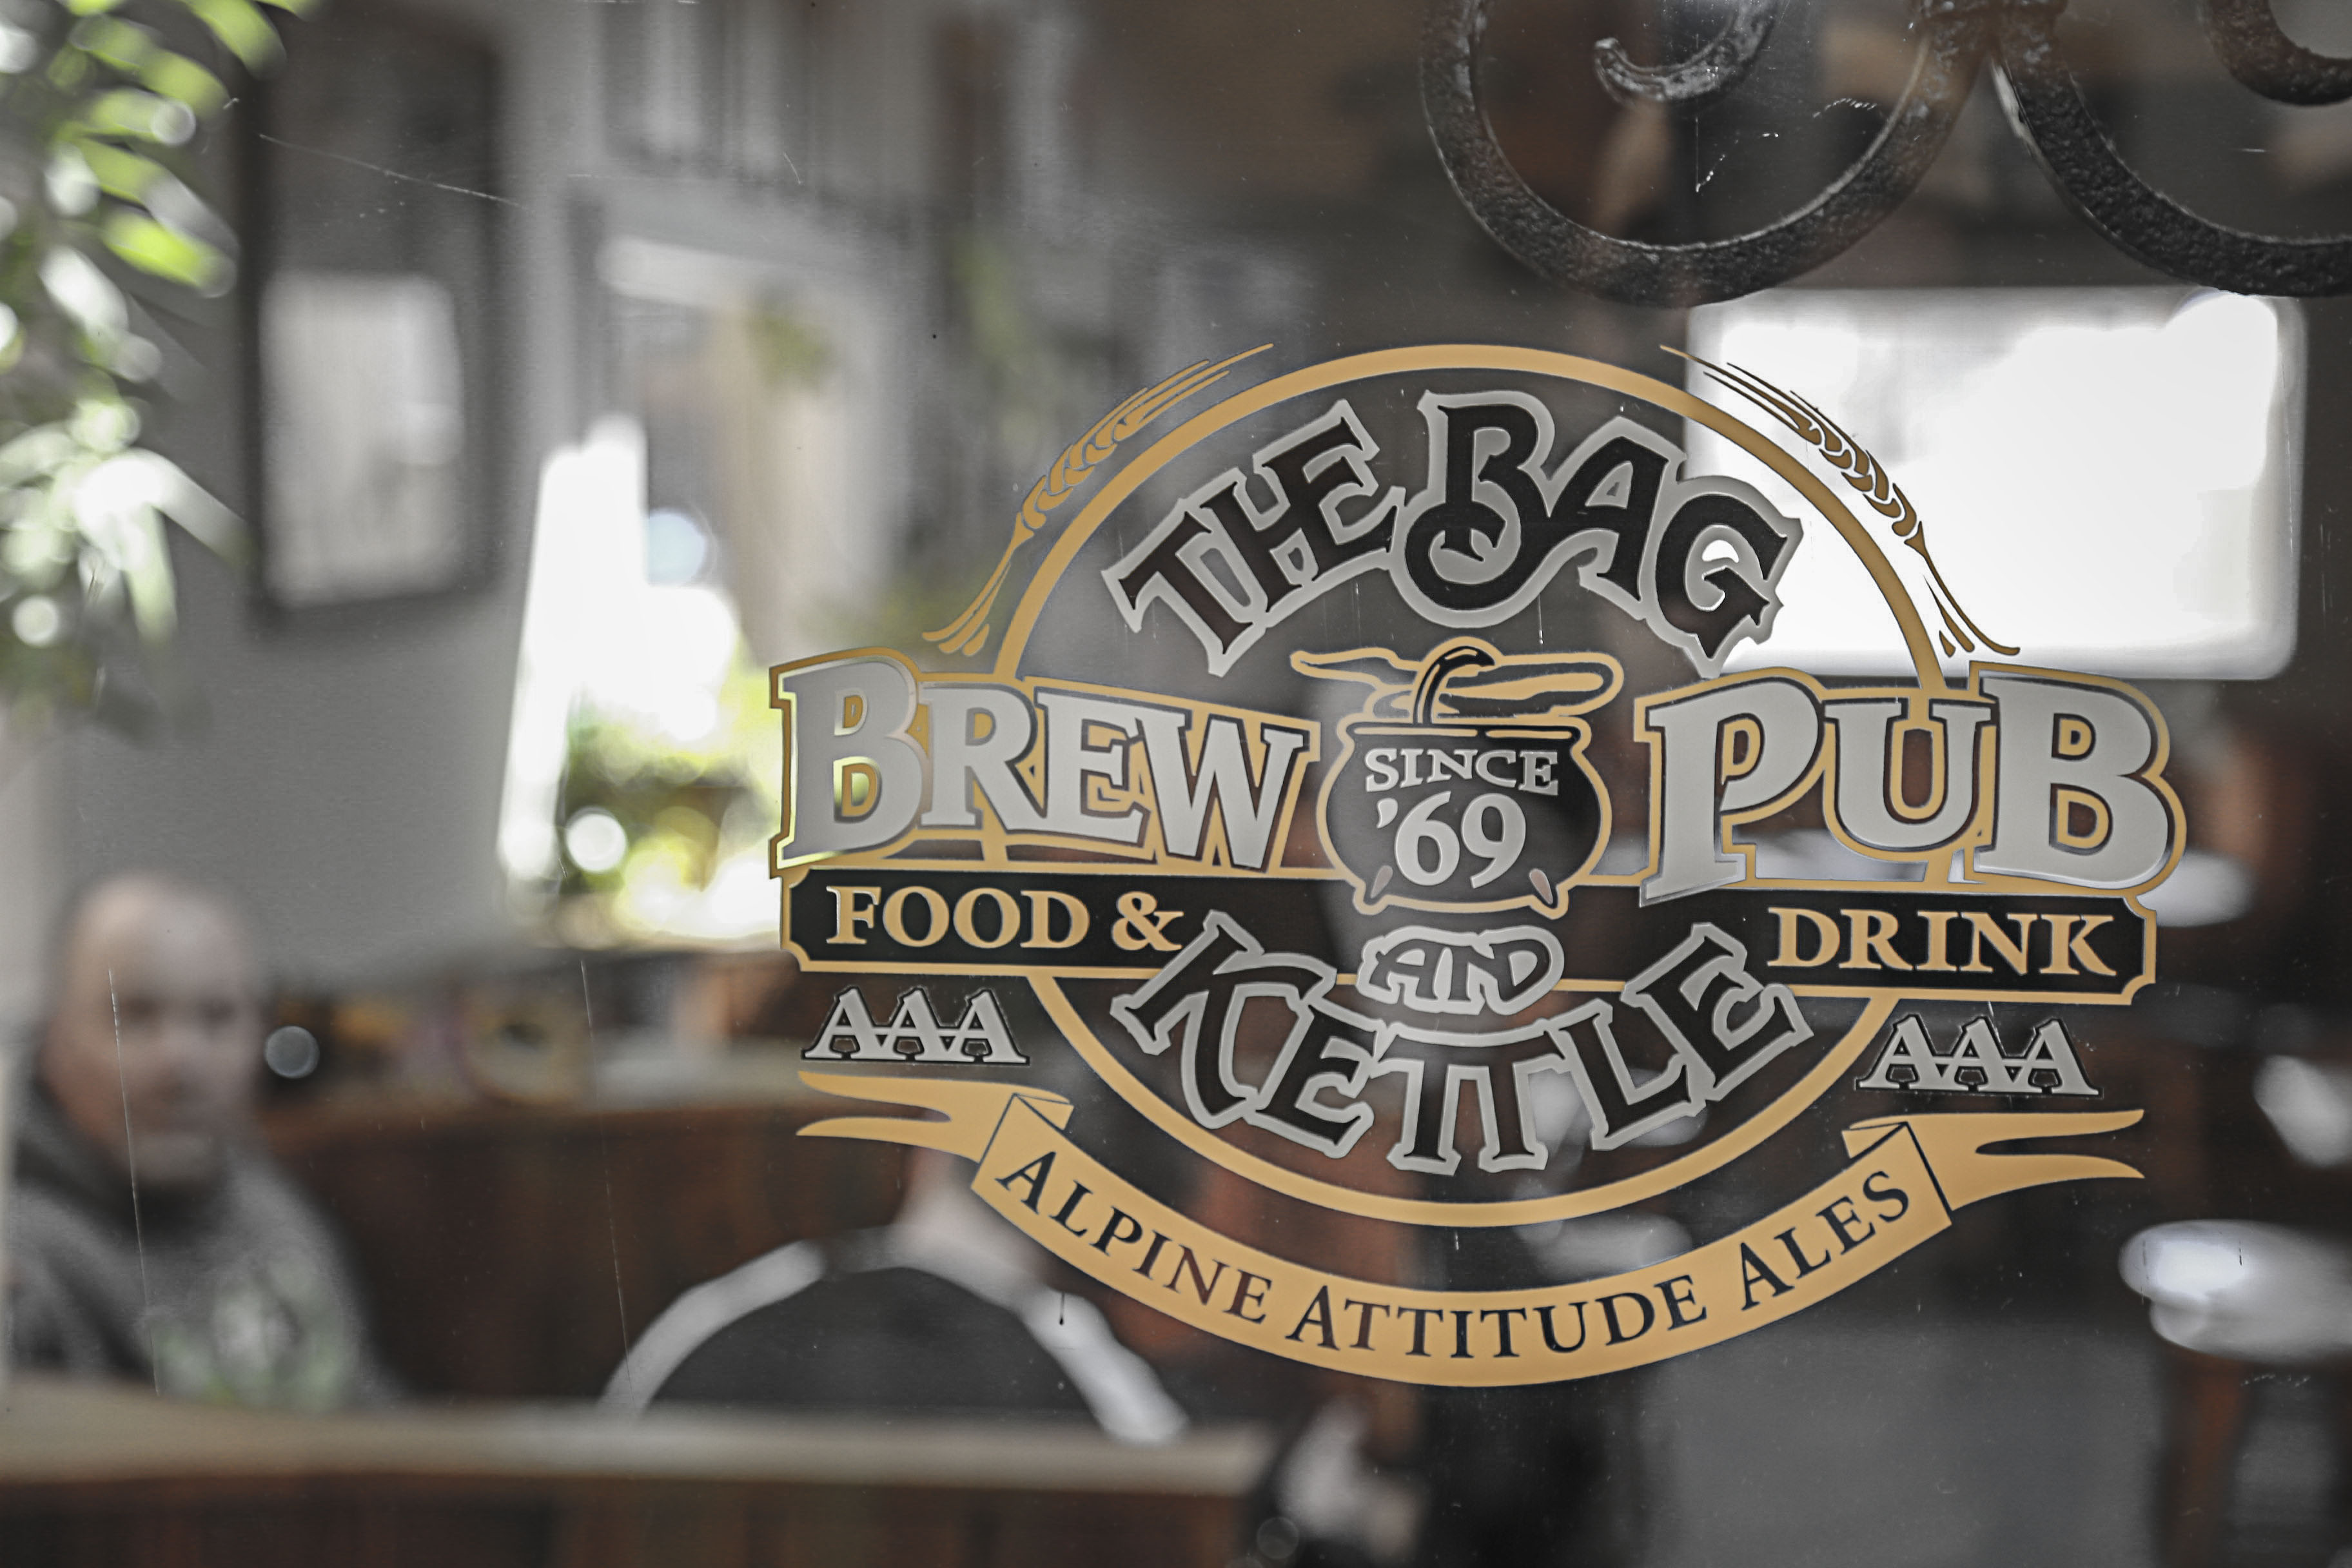 The Bag and Kettle